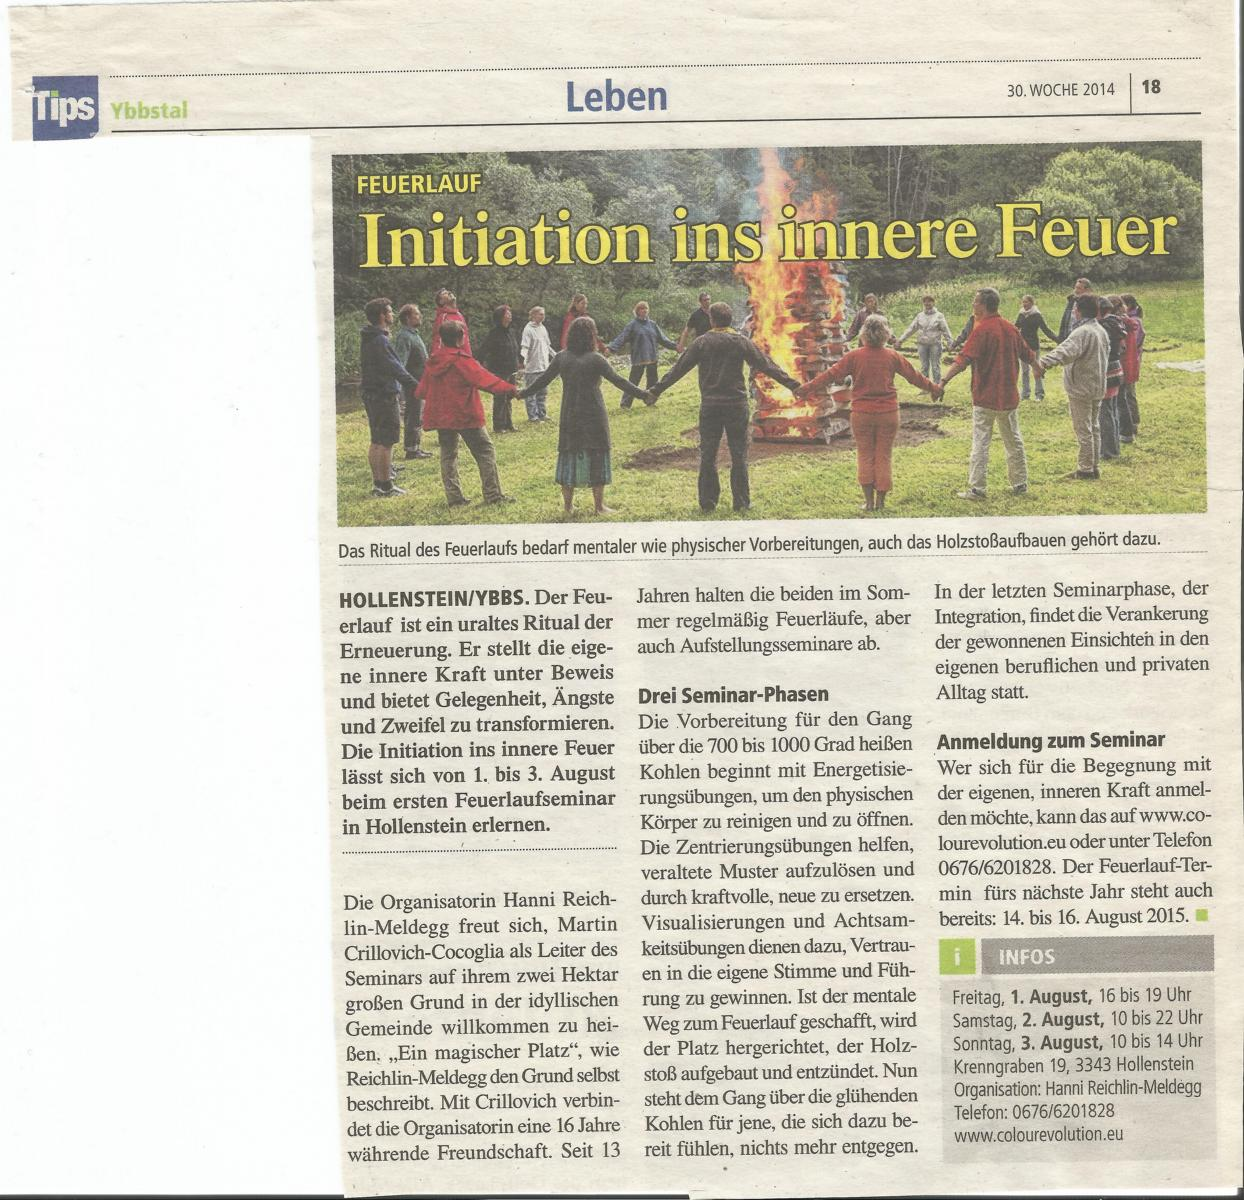 Initiation ins innere Feuer